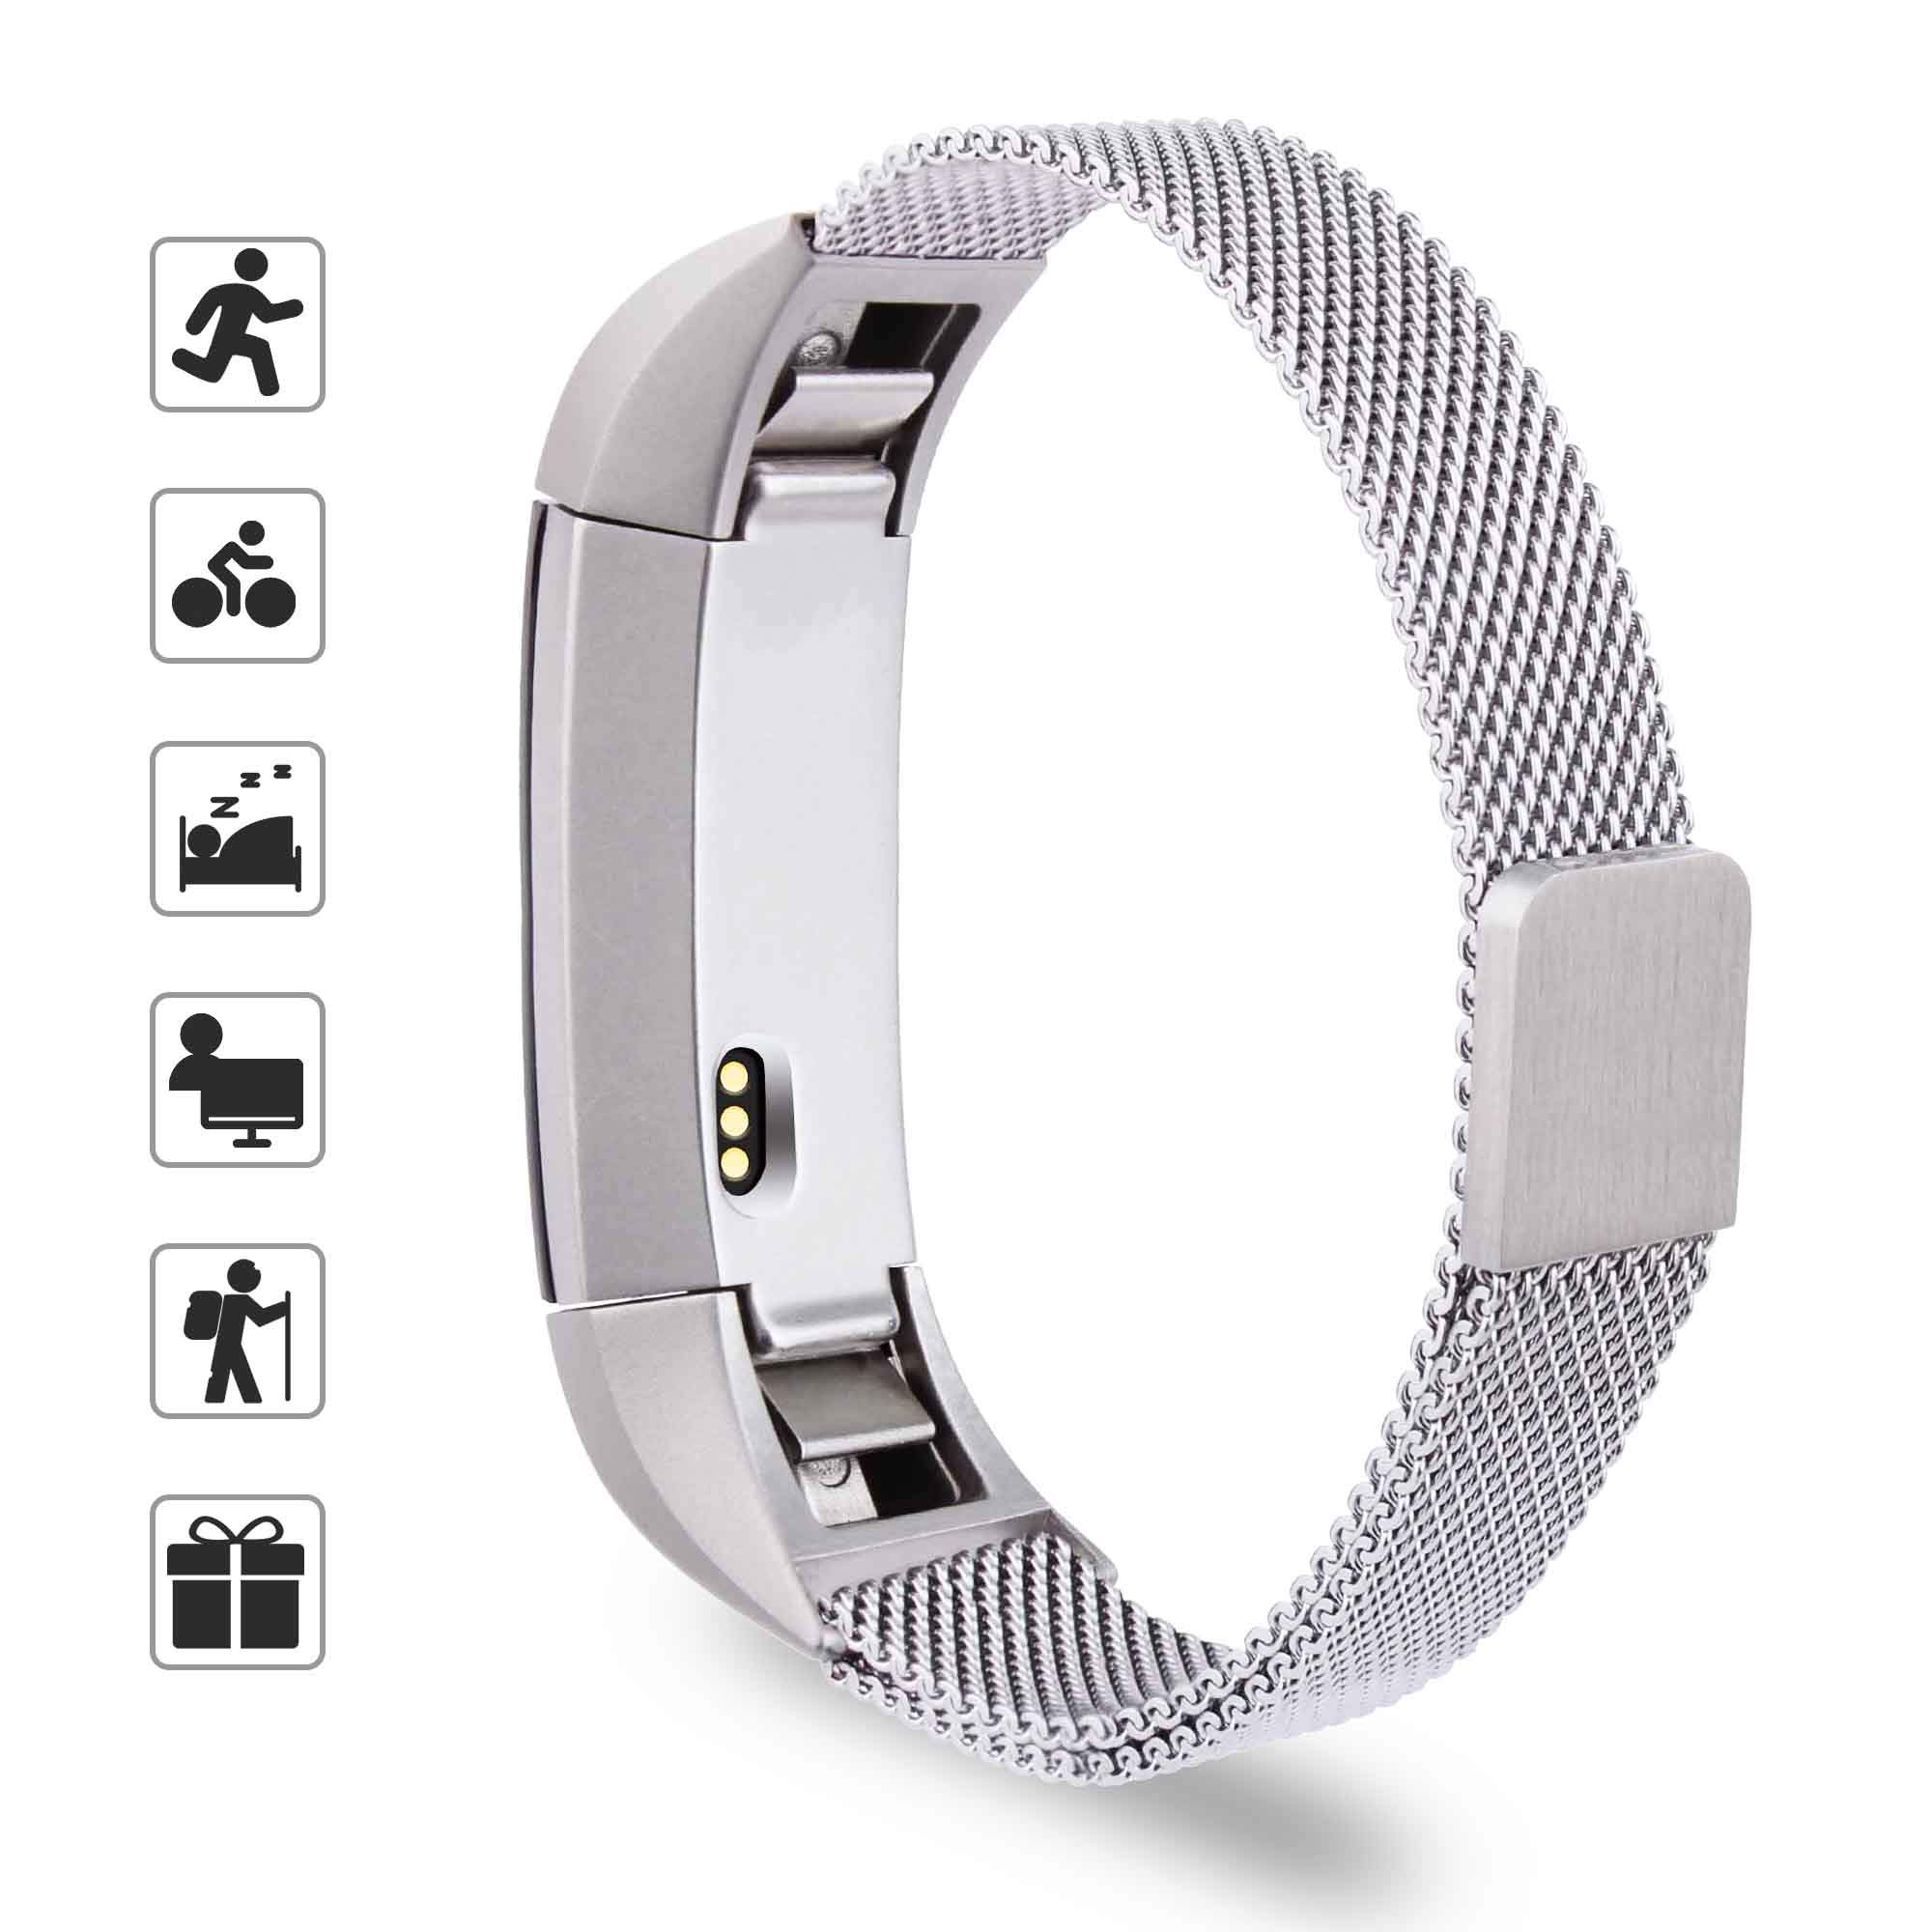 TOMALL Replacement Bands for Fitbit Alta HR and Fitbit Alta, Mesh Adjustable Replacement Accessories with Magnet Lock for Fitbit Alta/Alta HR (Silver)